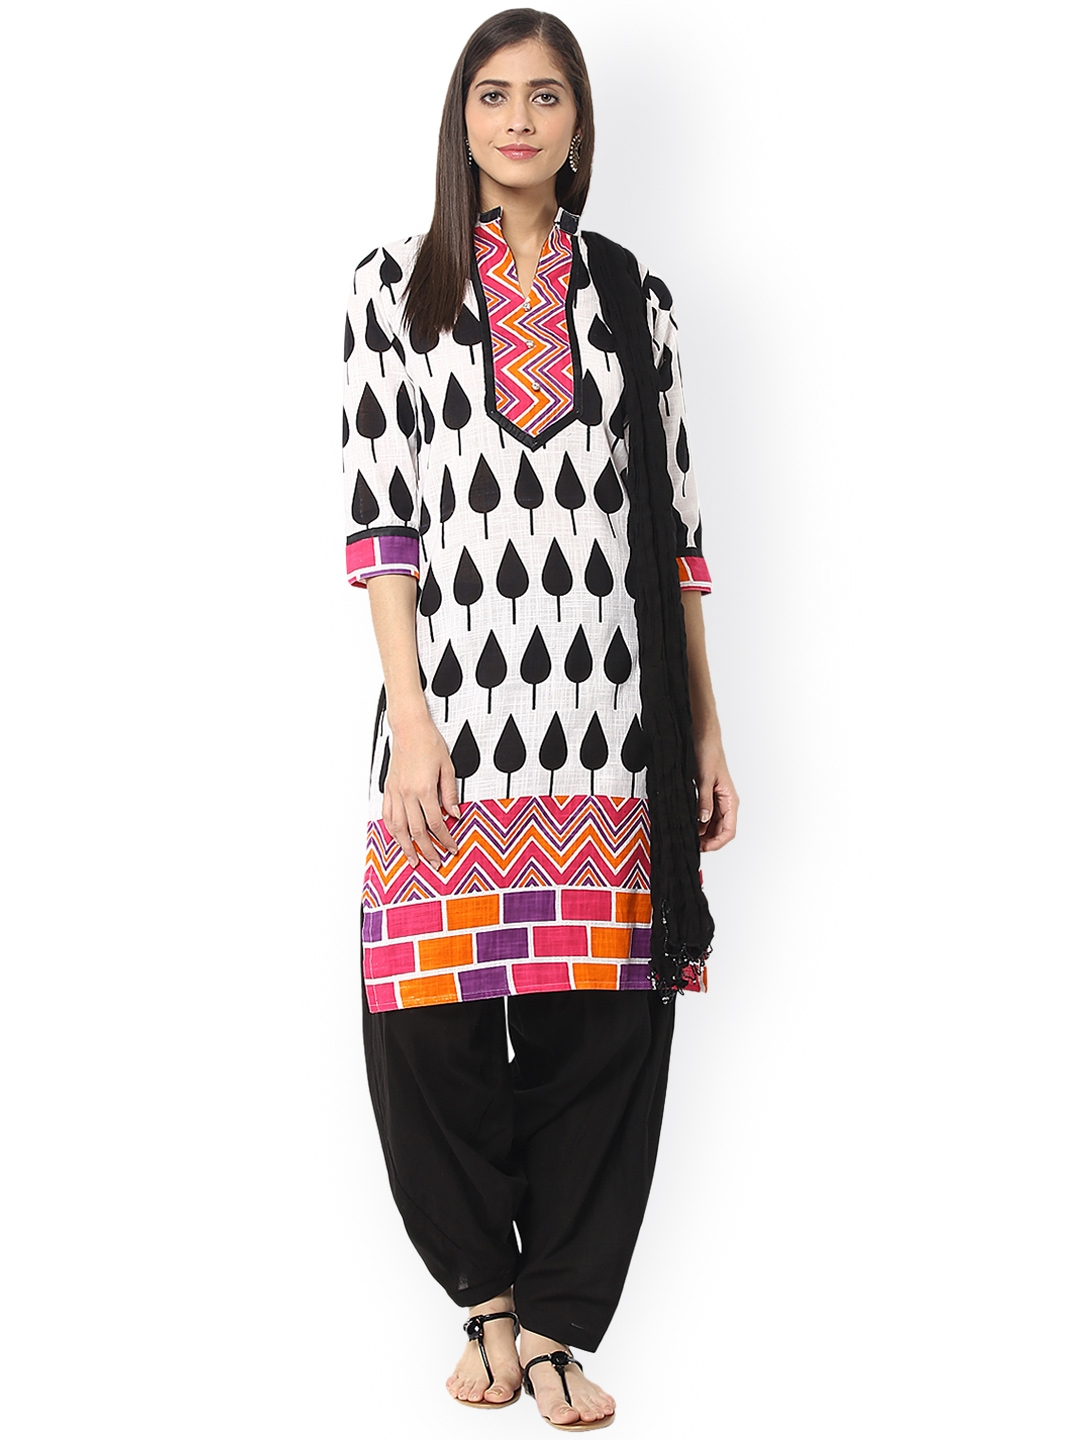 Jaipur Kurti White   Black Printed Salwar Suit with Dupatta